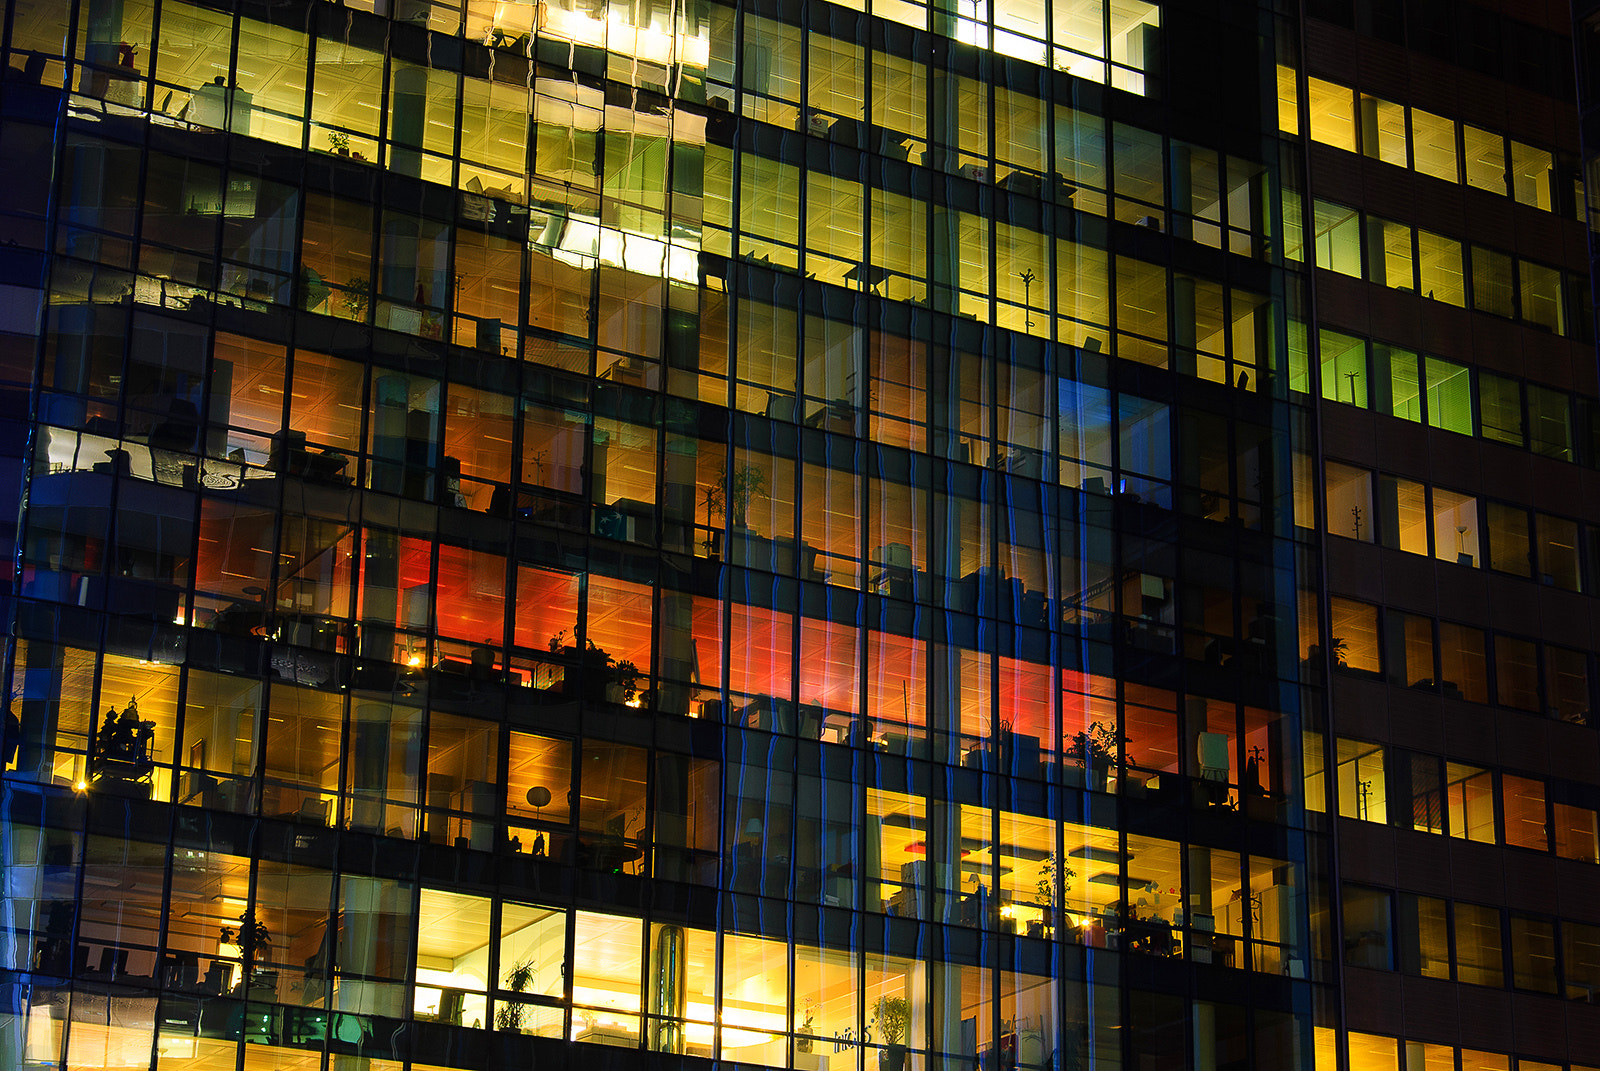 Photograph Offices at La Defense by Kristhian Mason on 500px